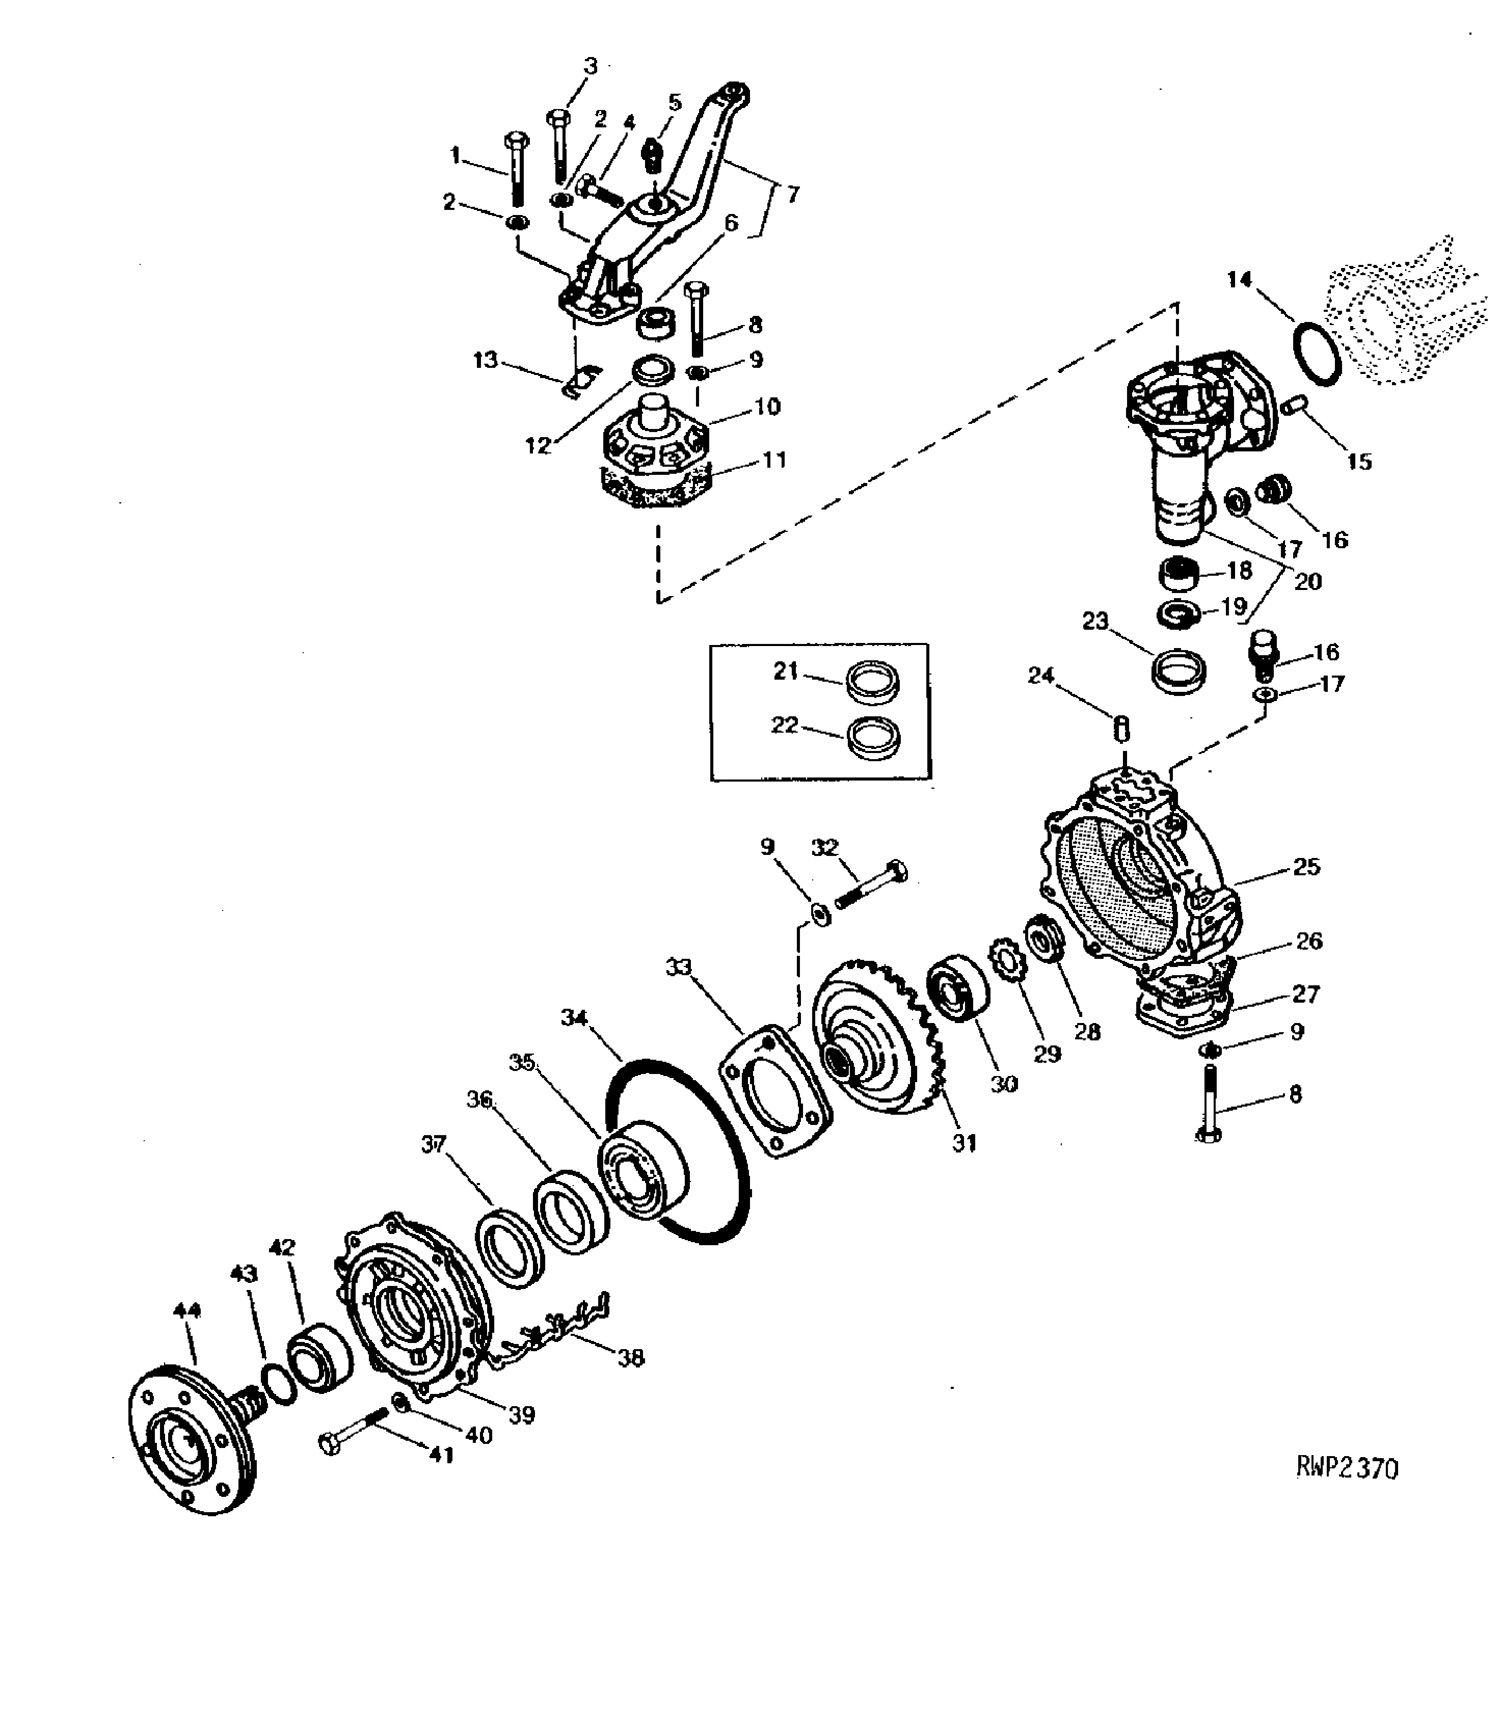 john deere 950 parts diagram john deere 830 parts diagram